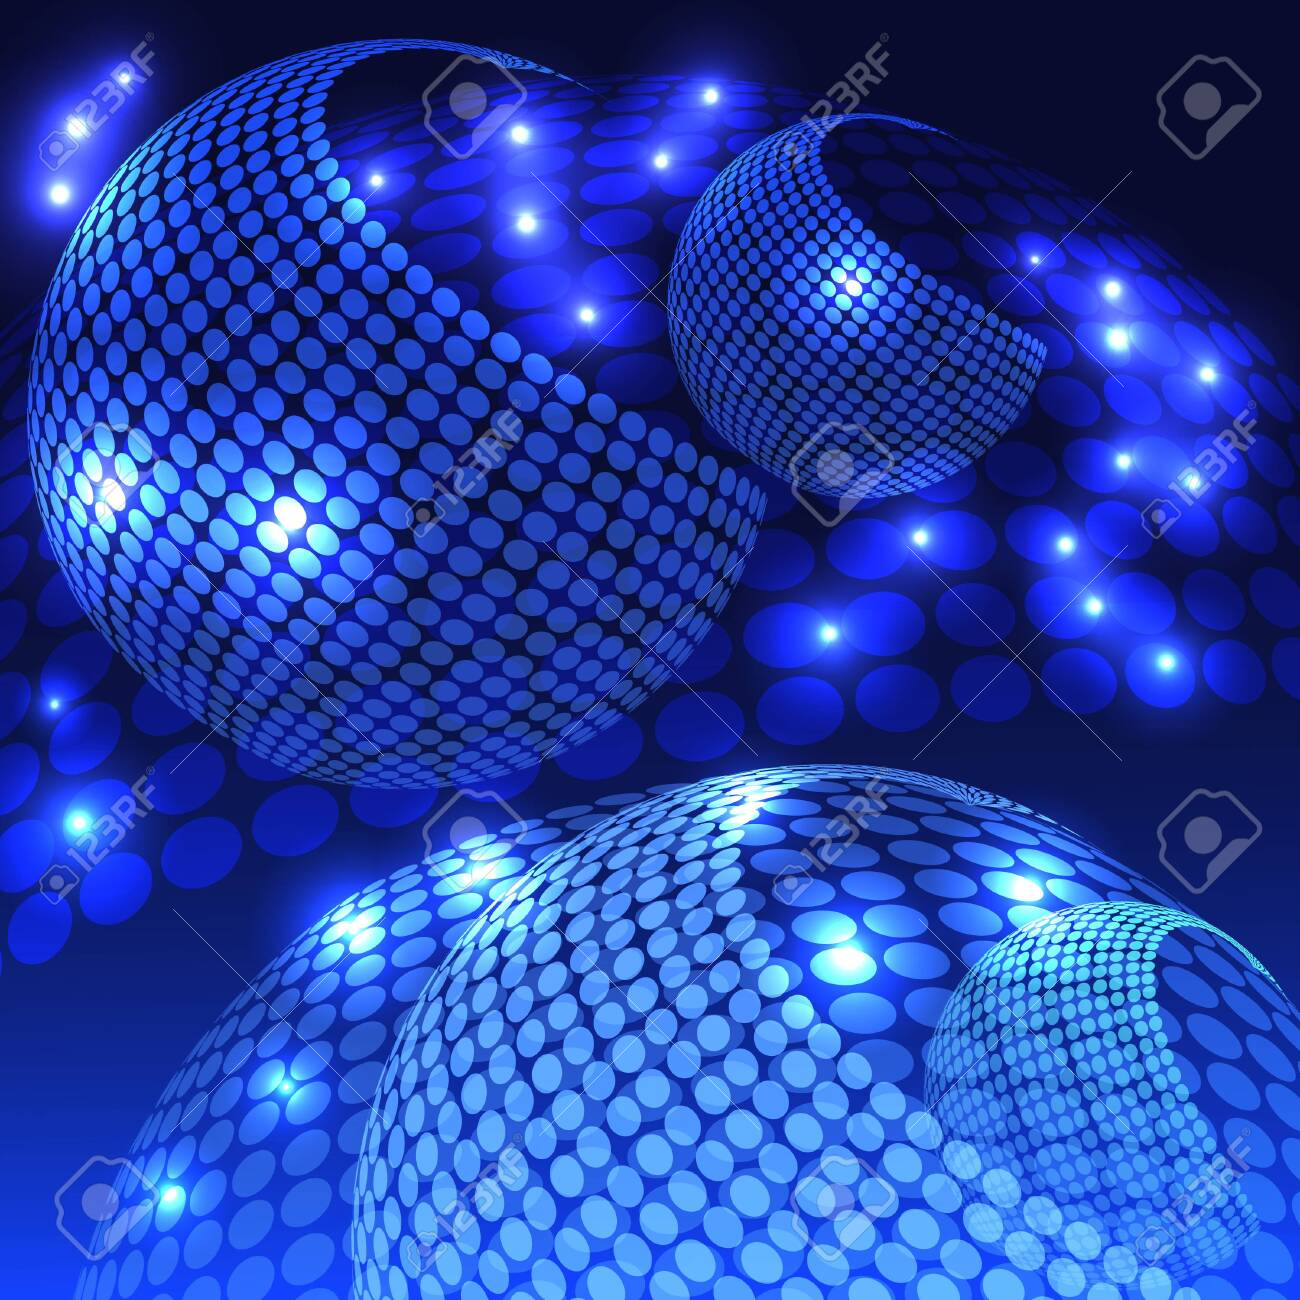 An abstract rendering of a disco night with shades of blue. - 130400266